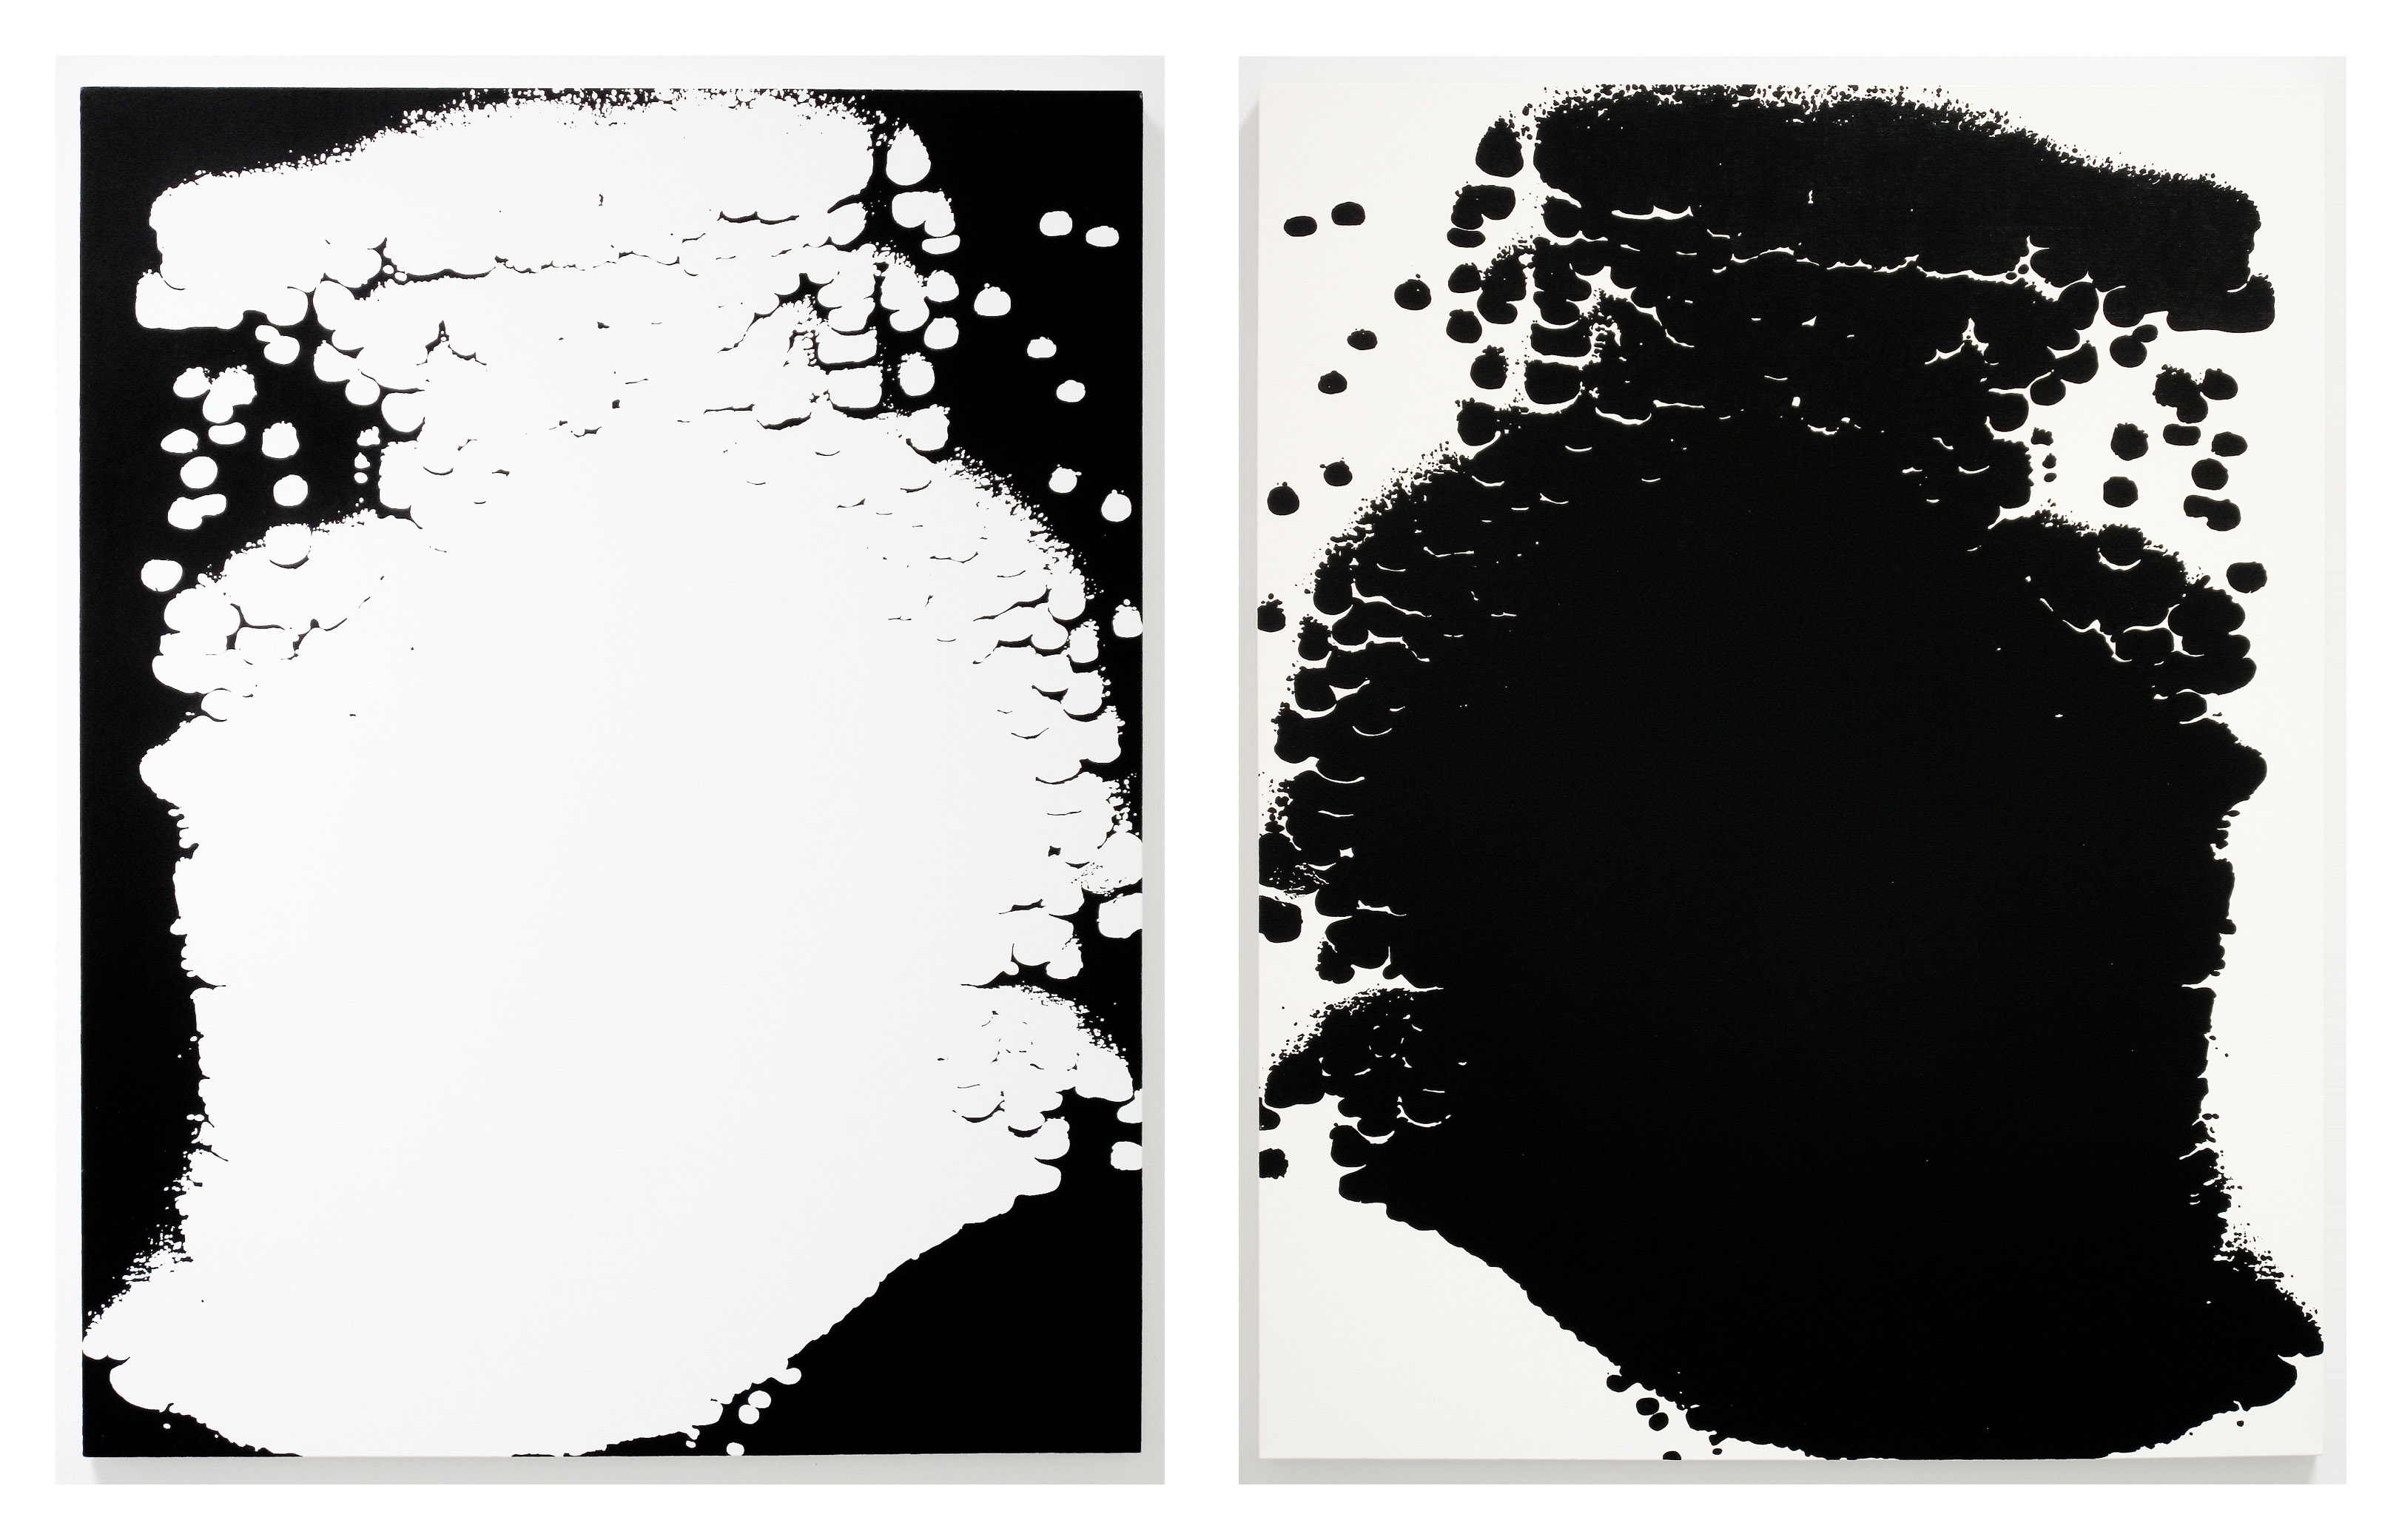 Scott Short, Untitled (blue negative reversed) and Untitled (blue), 2011, oil on canvas, each 52 x 40 1/4 inches